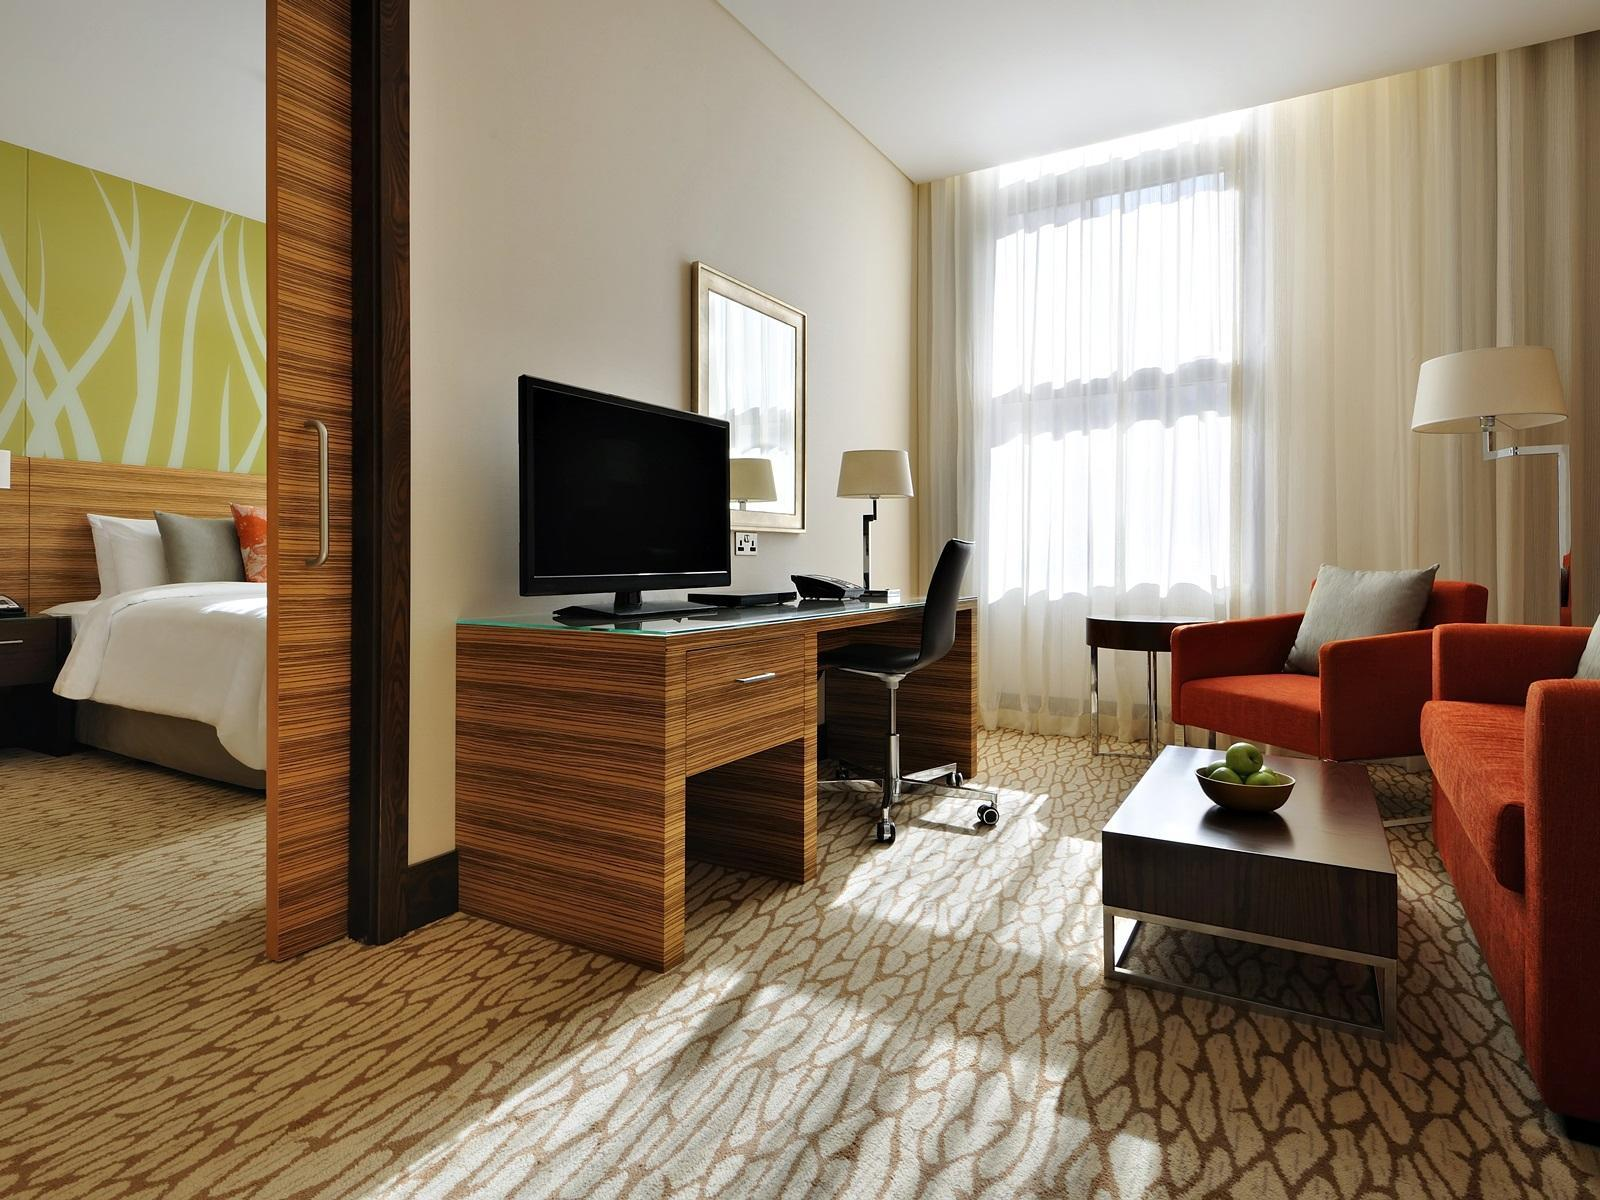 1 Bedroom Junior Suite, 1 King